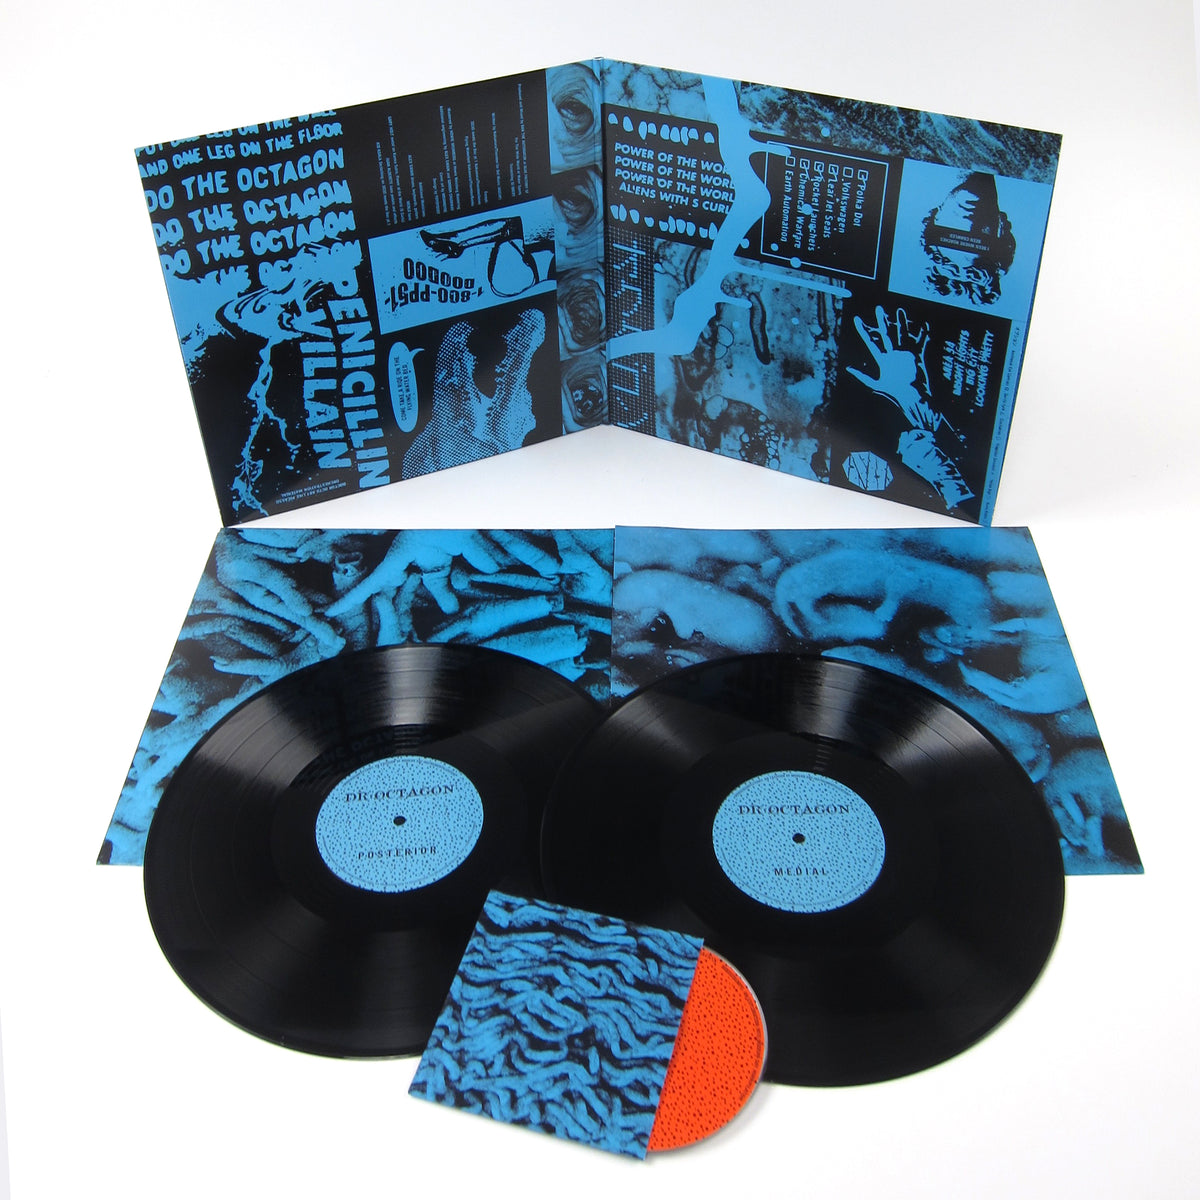 Dr. Octagon: Moosebumps - An Exploration Into Modern Day Horripilation Instrumentals Vinyl 2LP+CD (Record Store Day)